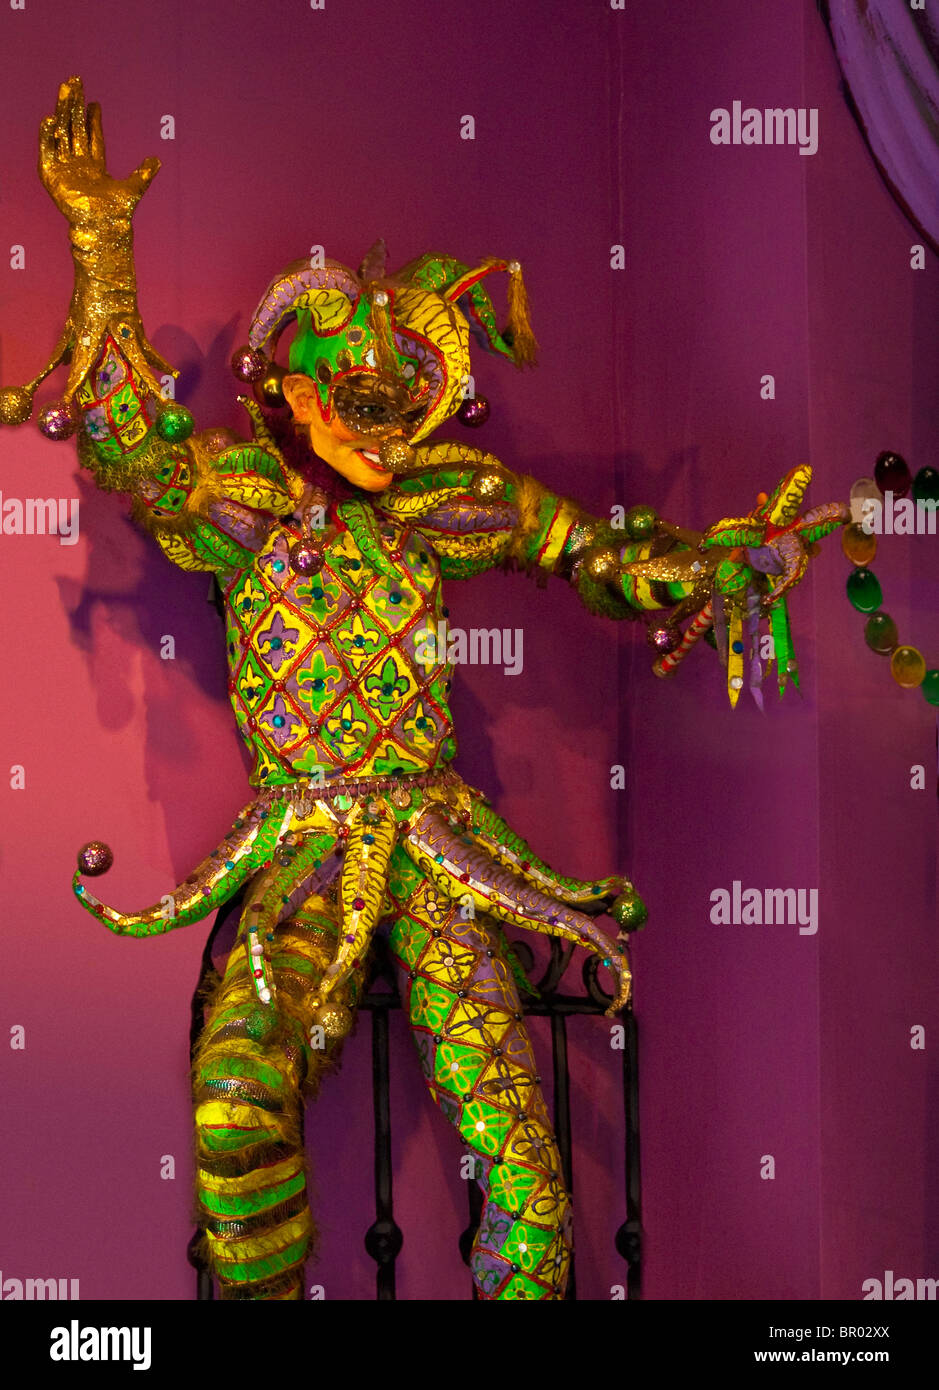 Fanciful jester figure in French Quarter shop of New Orleans, Louisiana, USA - Stock Image